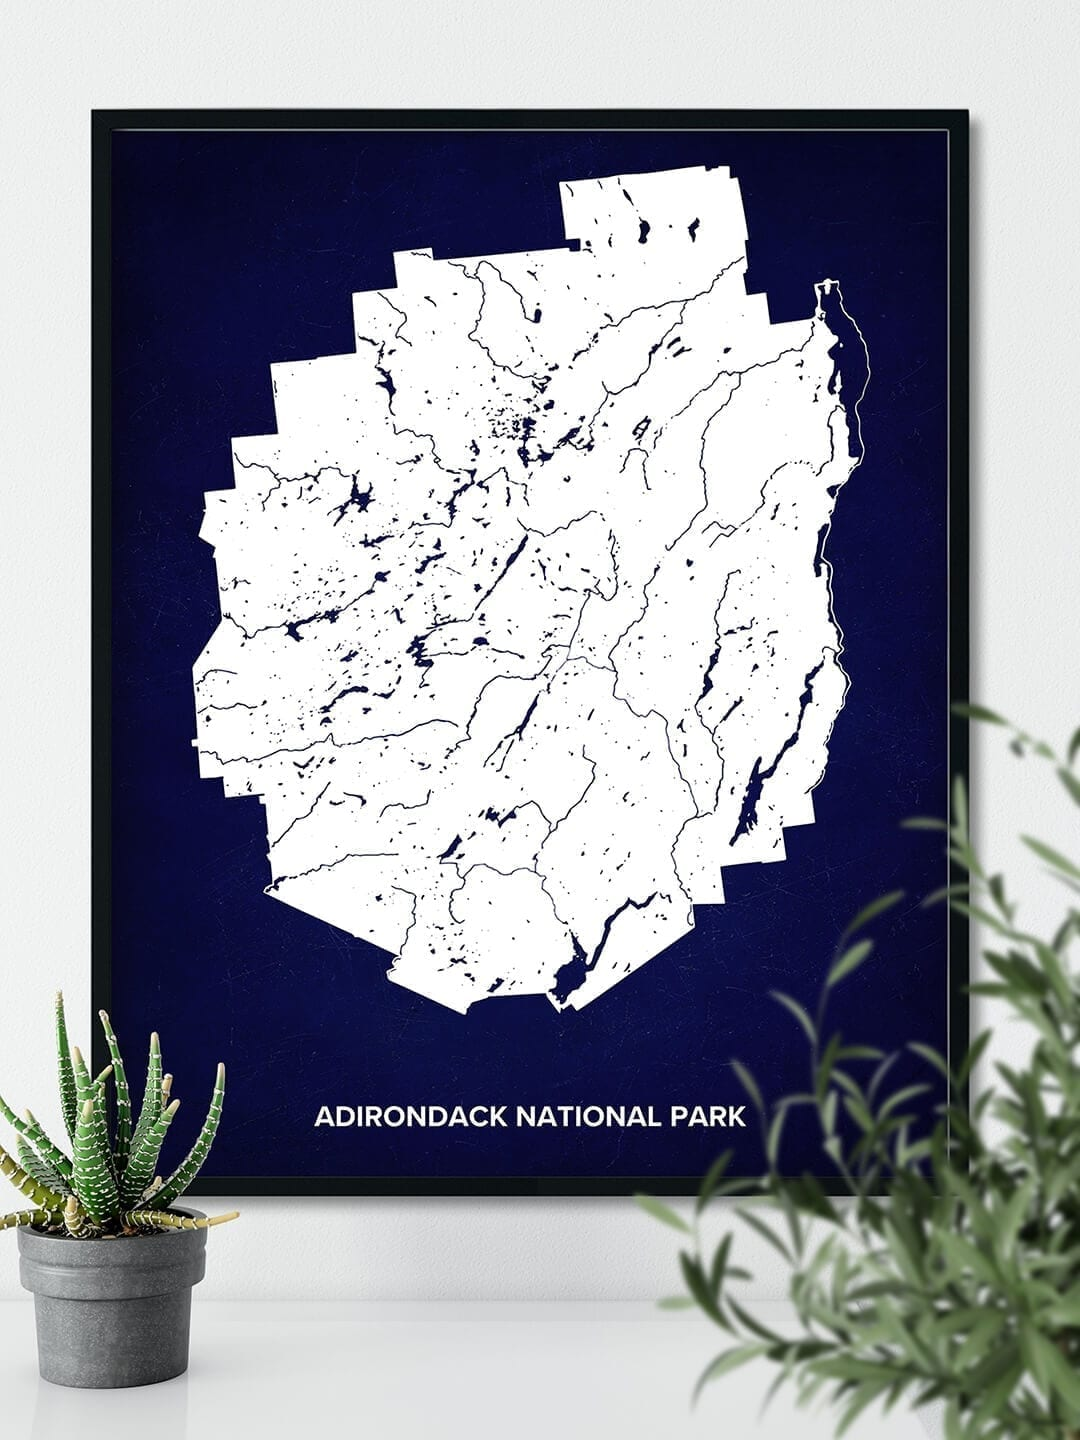 Adirondack National Park Map Poster hanging on the bright wall next to some indoor plants